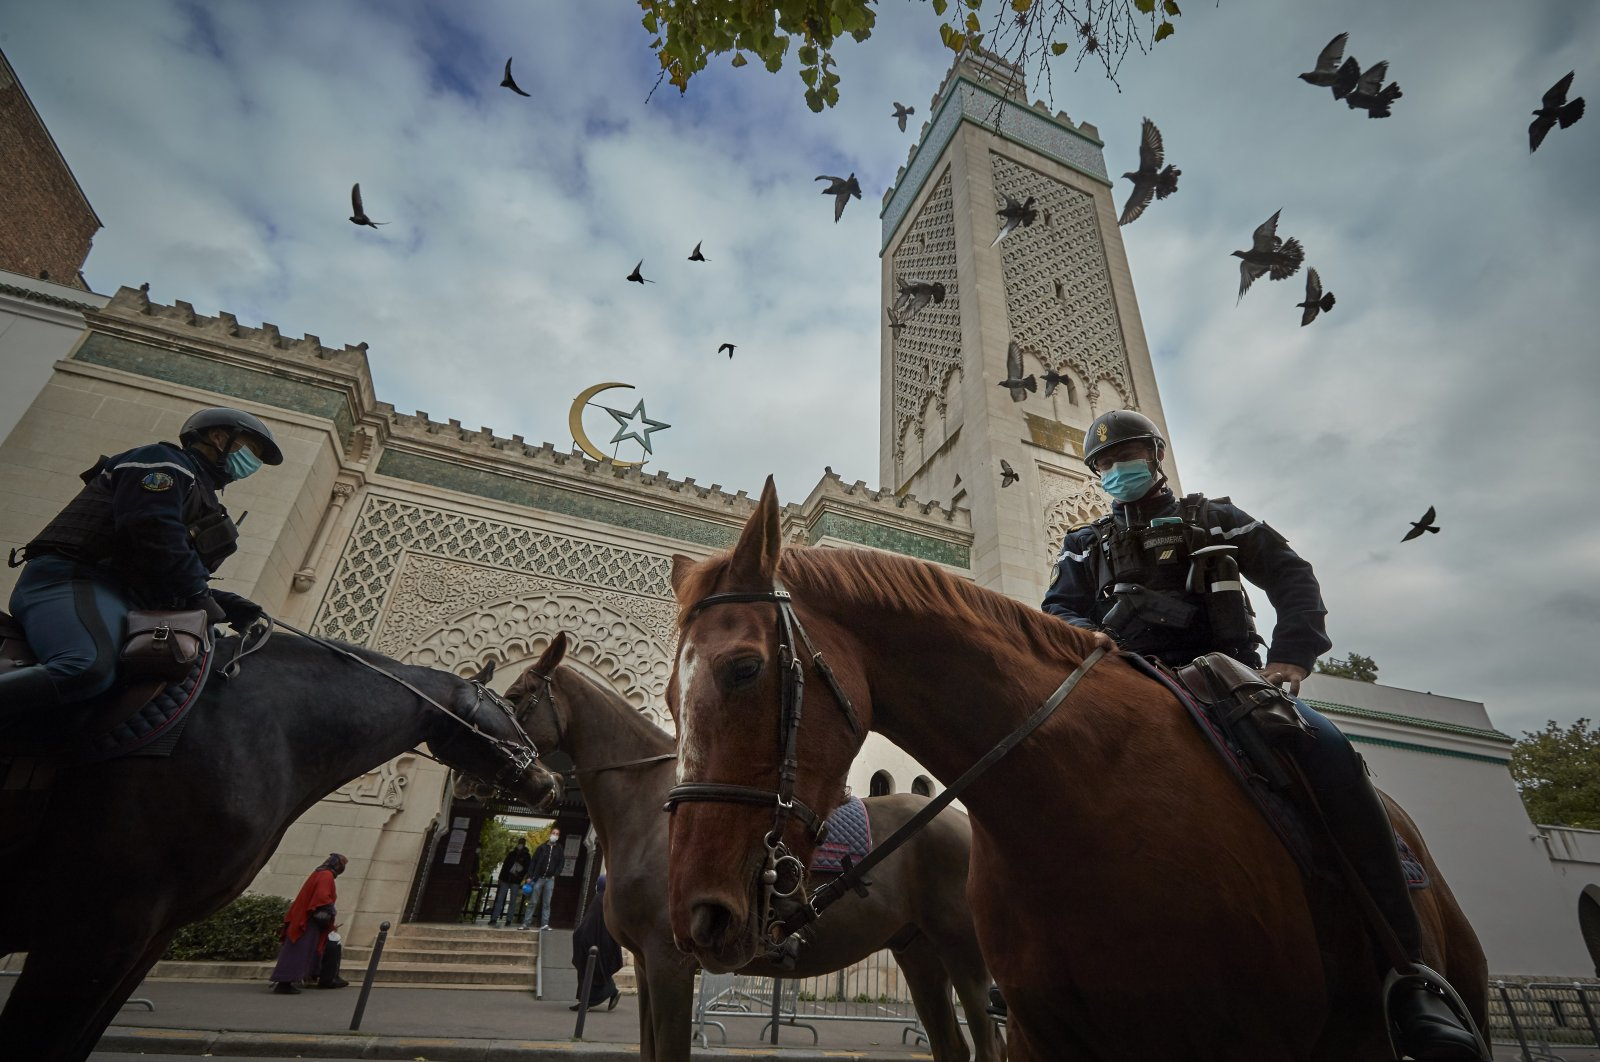 Mounted police patrol outside the Grand Mosque of Paris during Friday prayers, Paris, France, Oct. 30, 2020. (Photo by Getty Images)